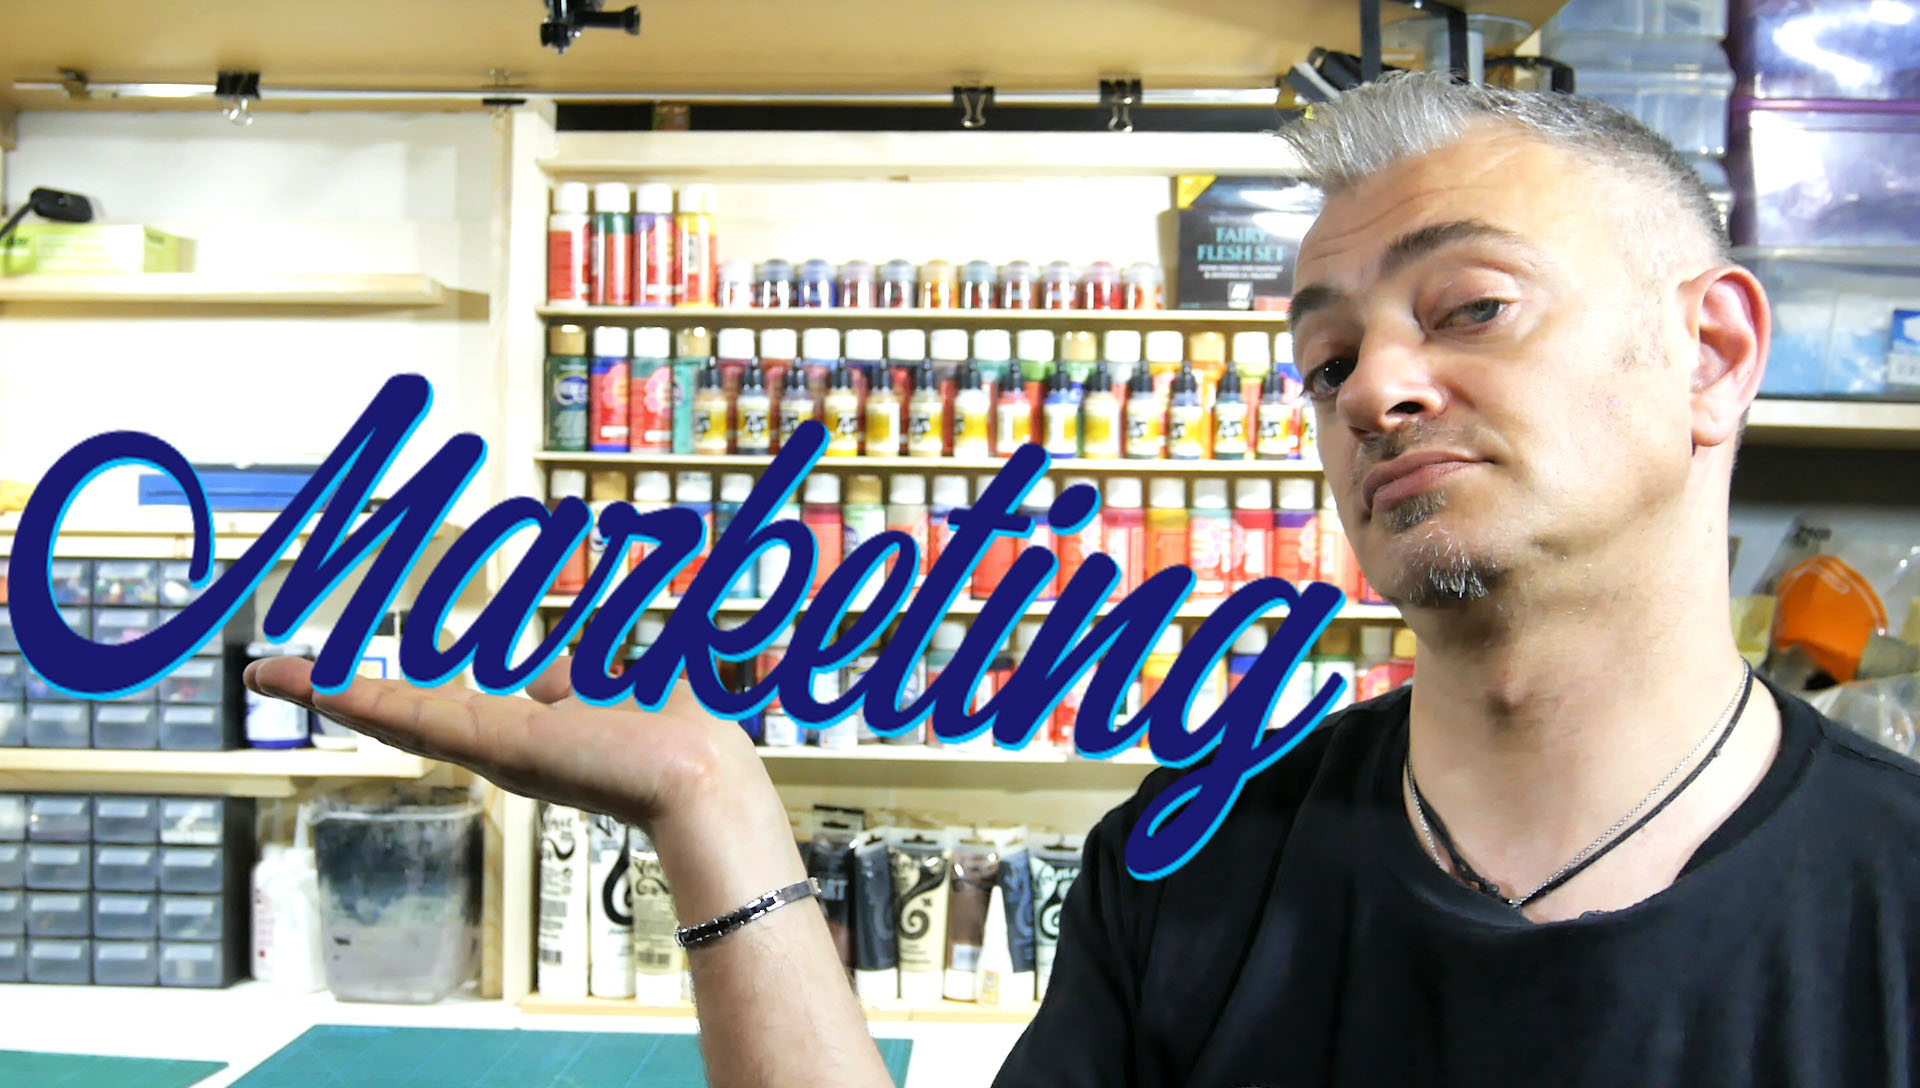 Merchandising e Marketing sui giocattoli